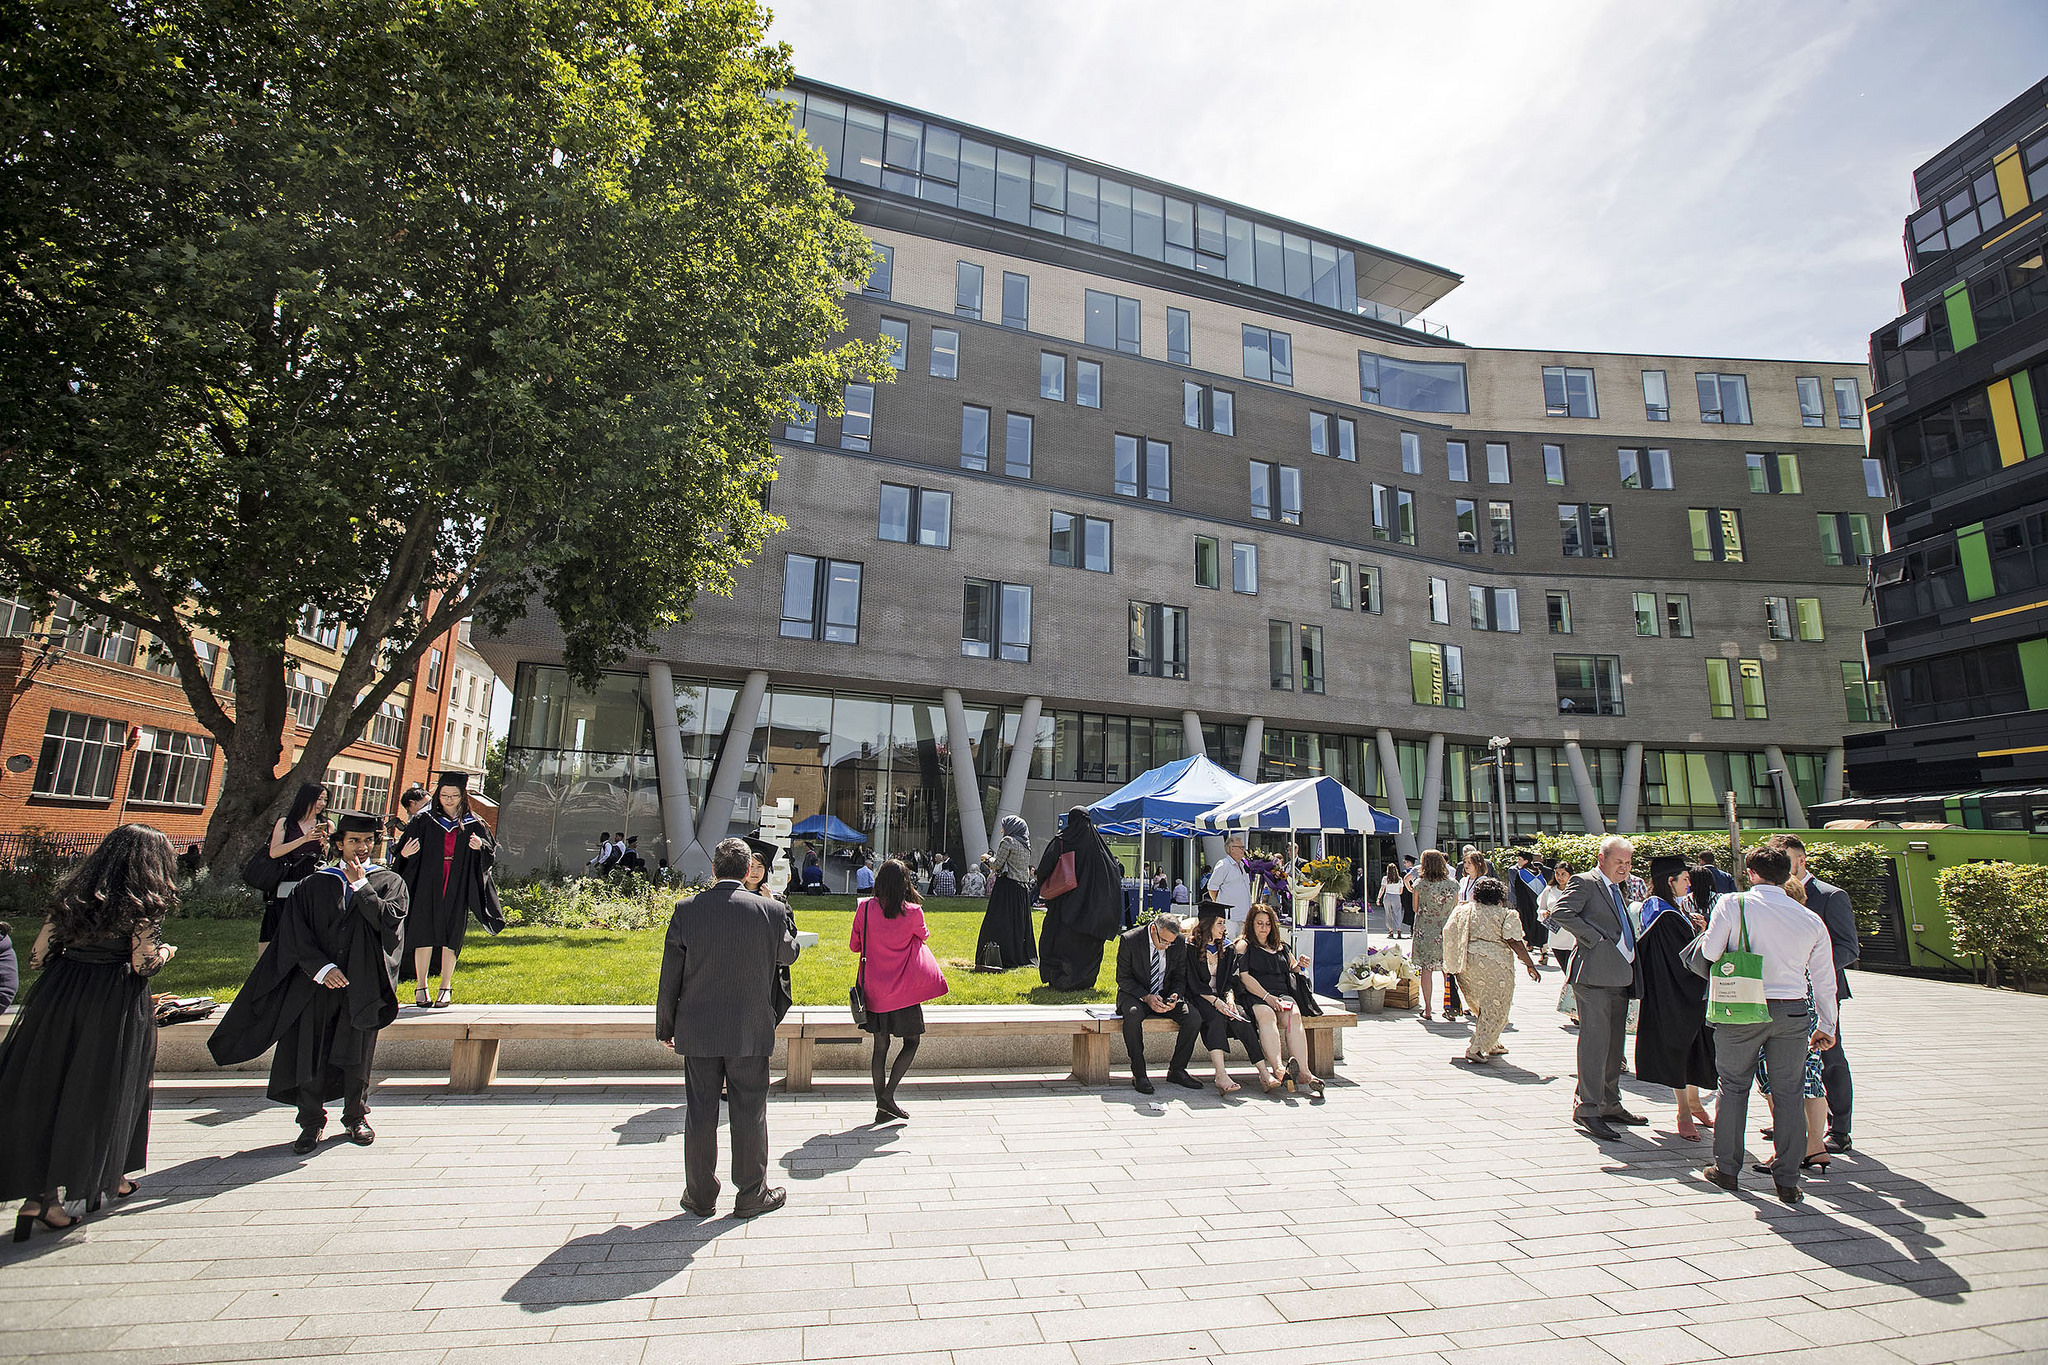 A sunny scene of people walking outside the Graduate Centre, the home of the School of Economics and Finance